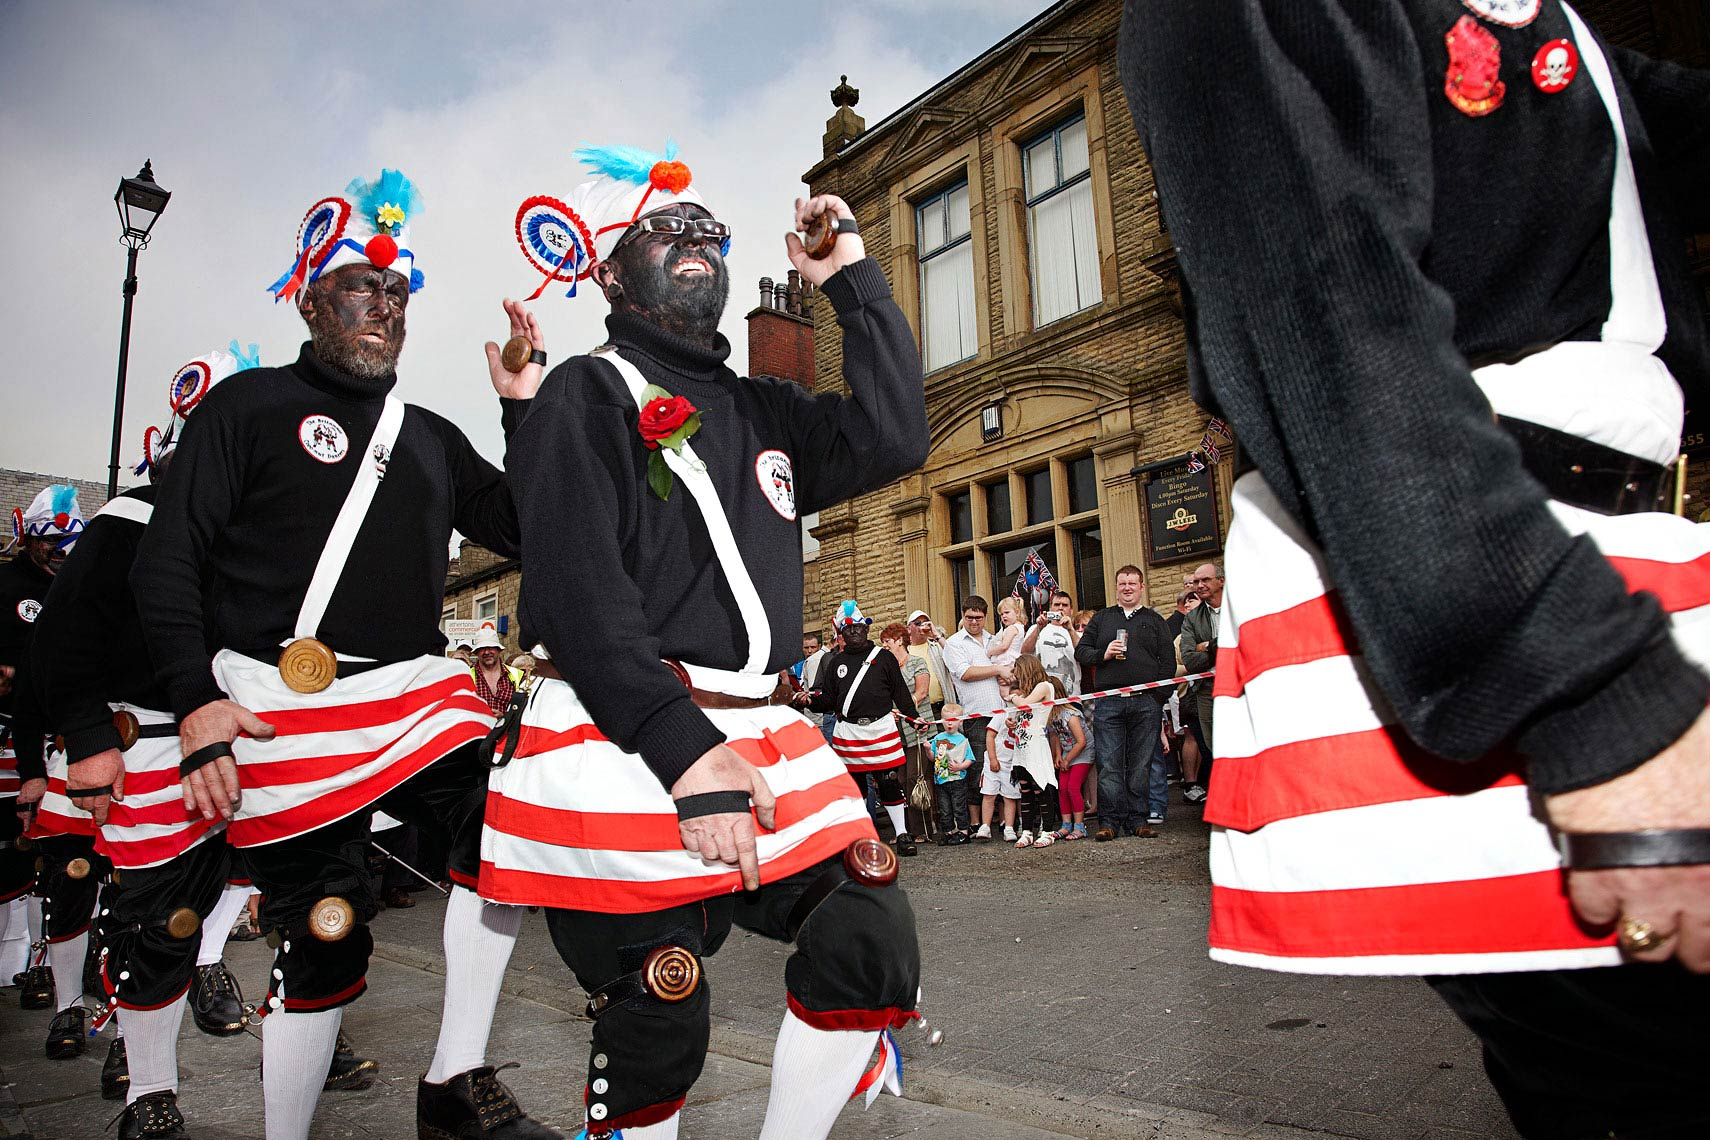 bacup coconutters molly dance tradition